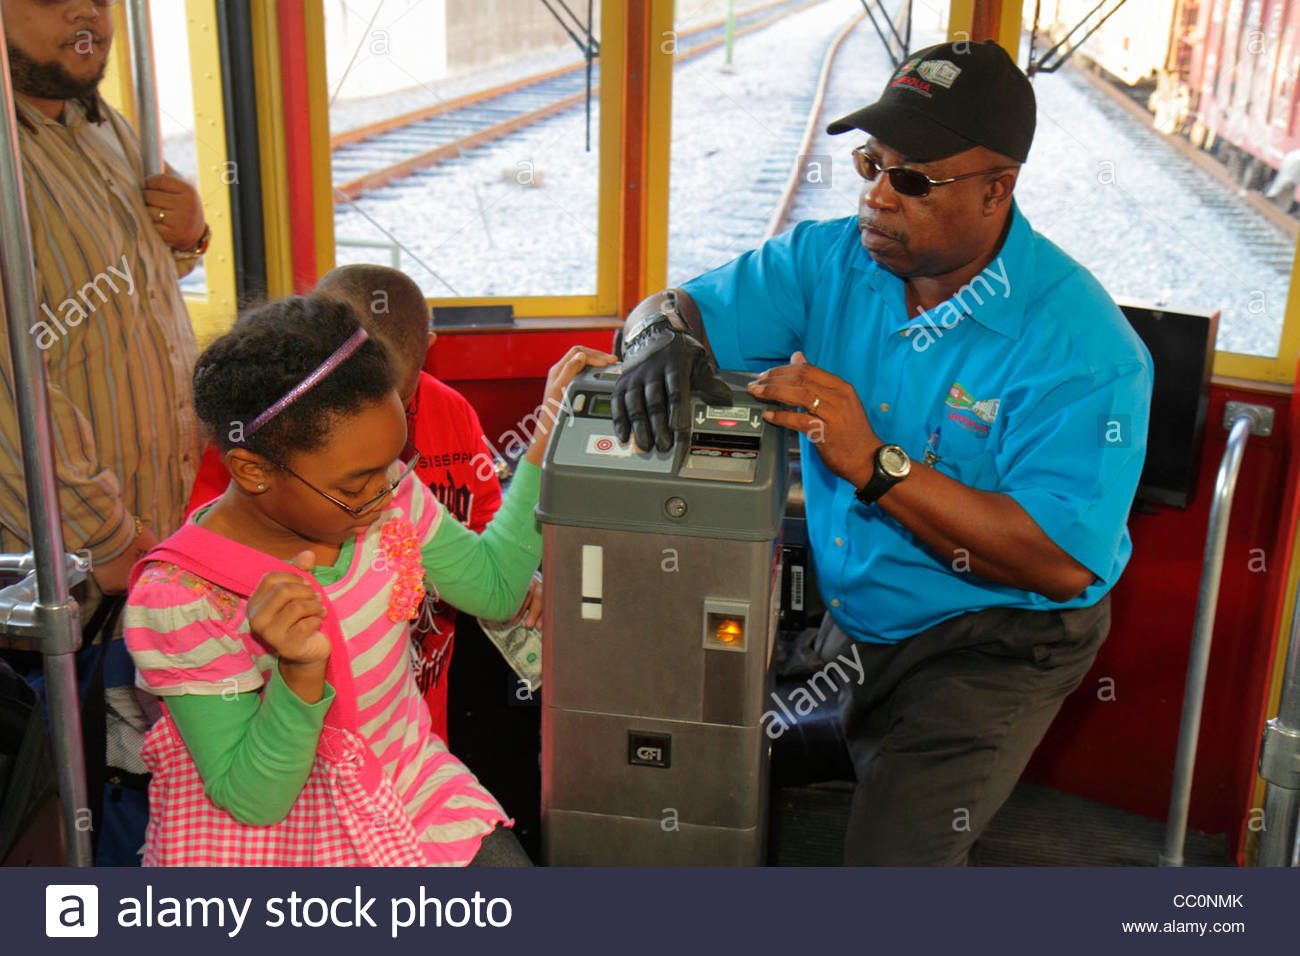 New Orleans Louisiana Regional Transit Authority RTA public transportation Riverfront Streetcar Line tram trolley - Stock Image